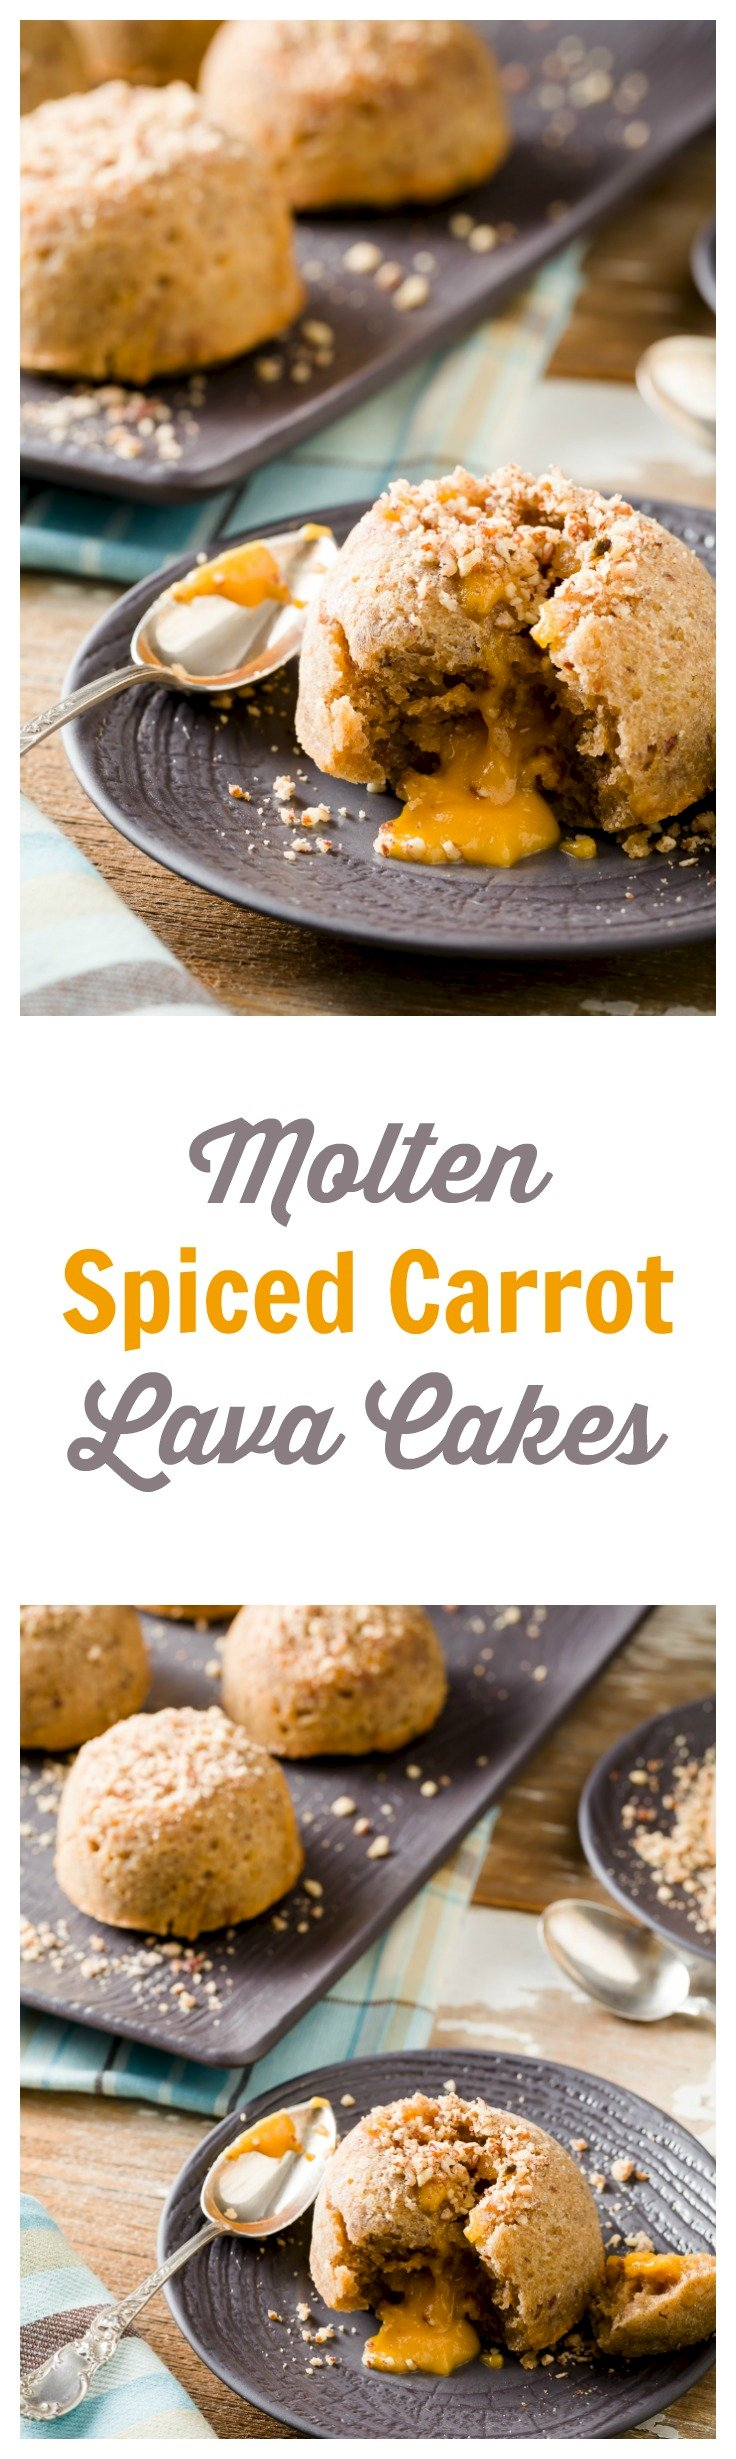 Spiced Carrot Lava Cakes